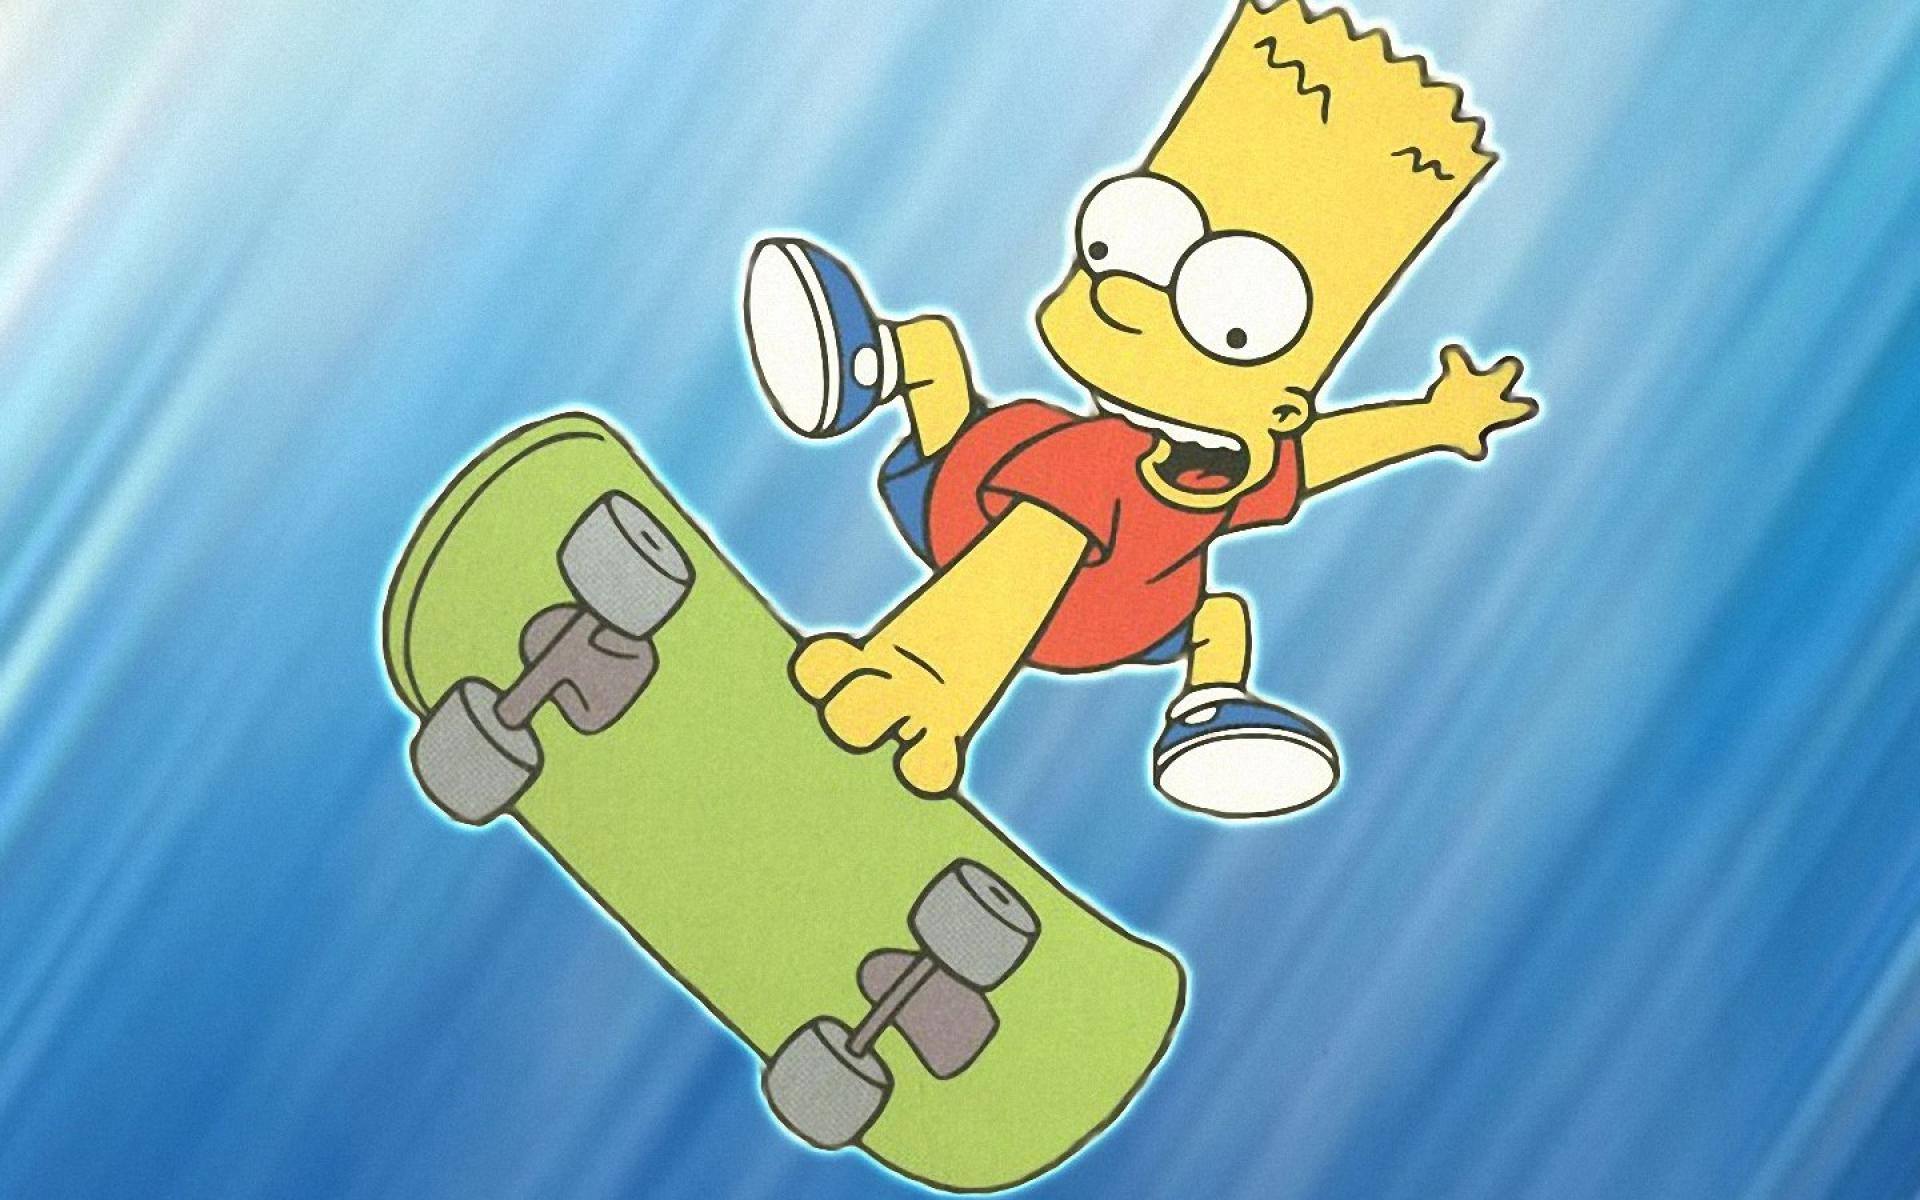 Bart Simpson Wallpapers   Wallpaper High Definition High Quality 1920x1200